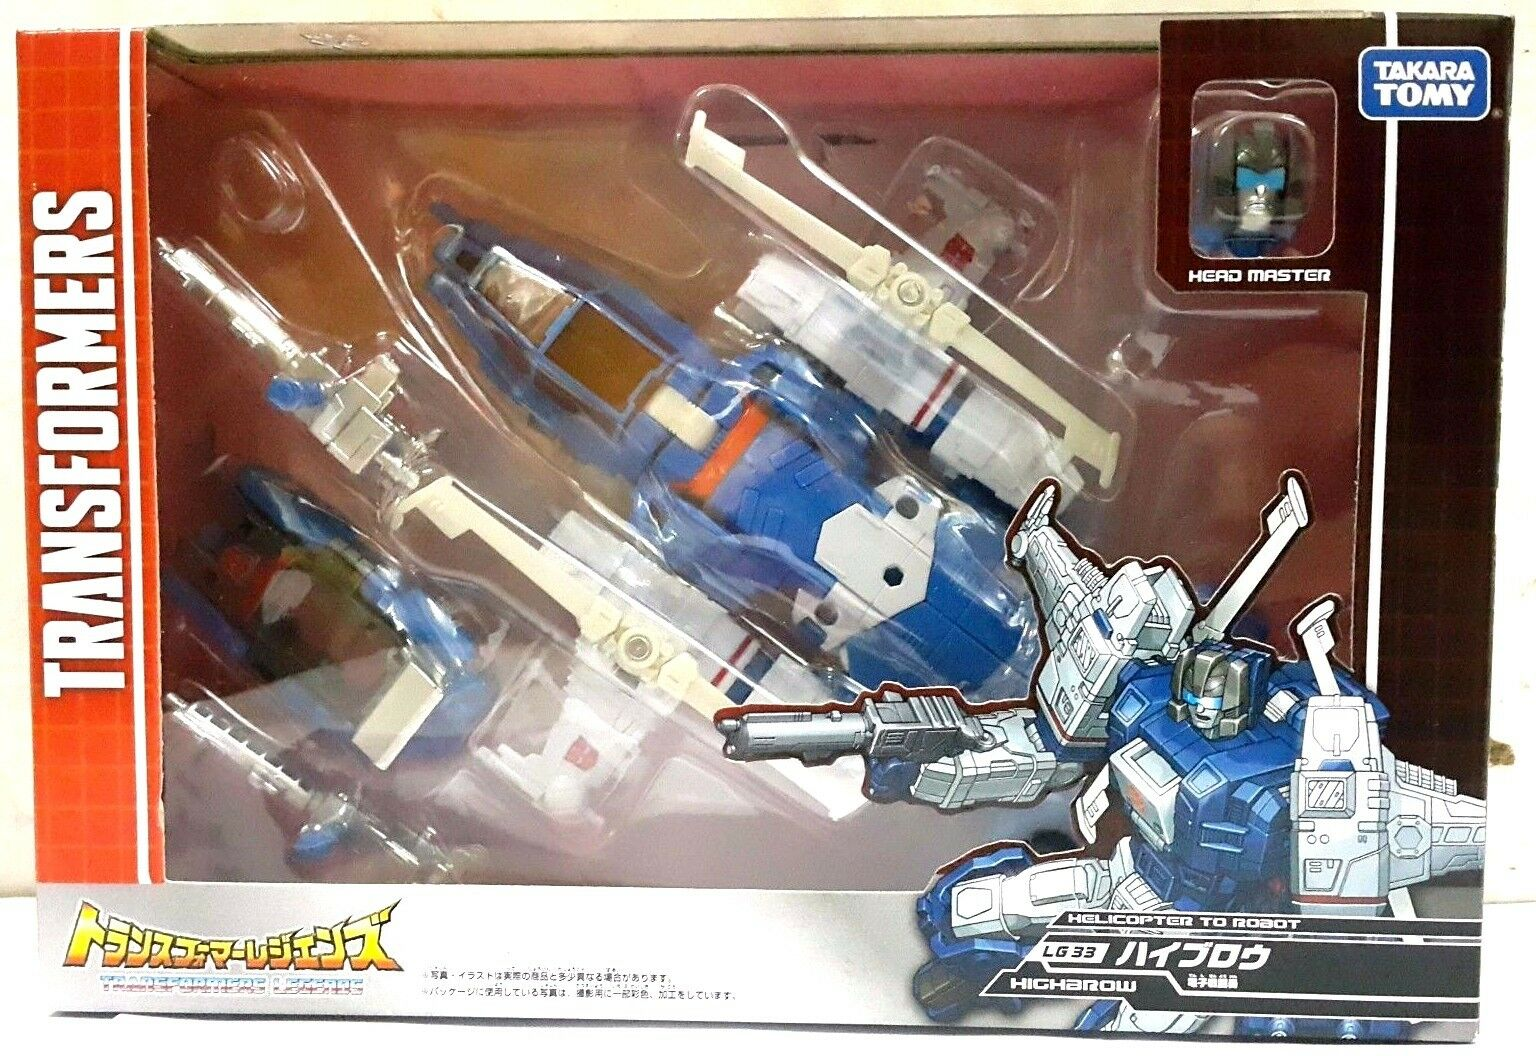 Transformers Takara Legends LG-33 Highbrow Helicoper Action Figure NEW  UK